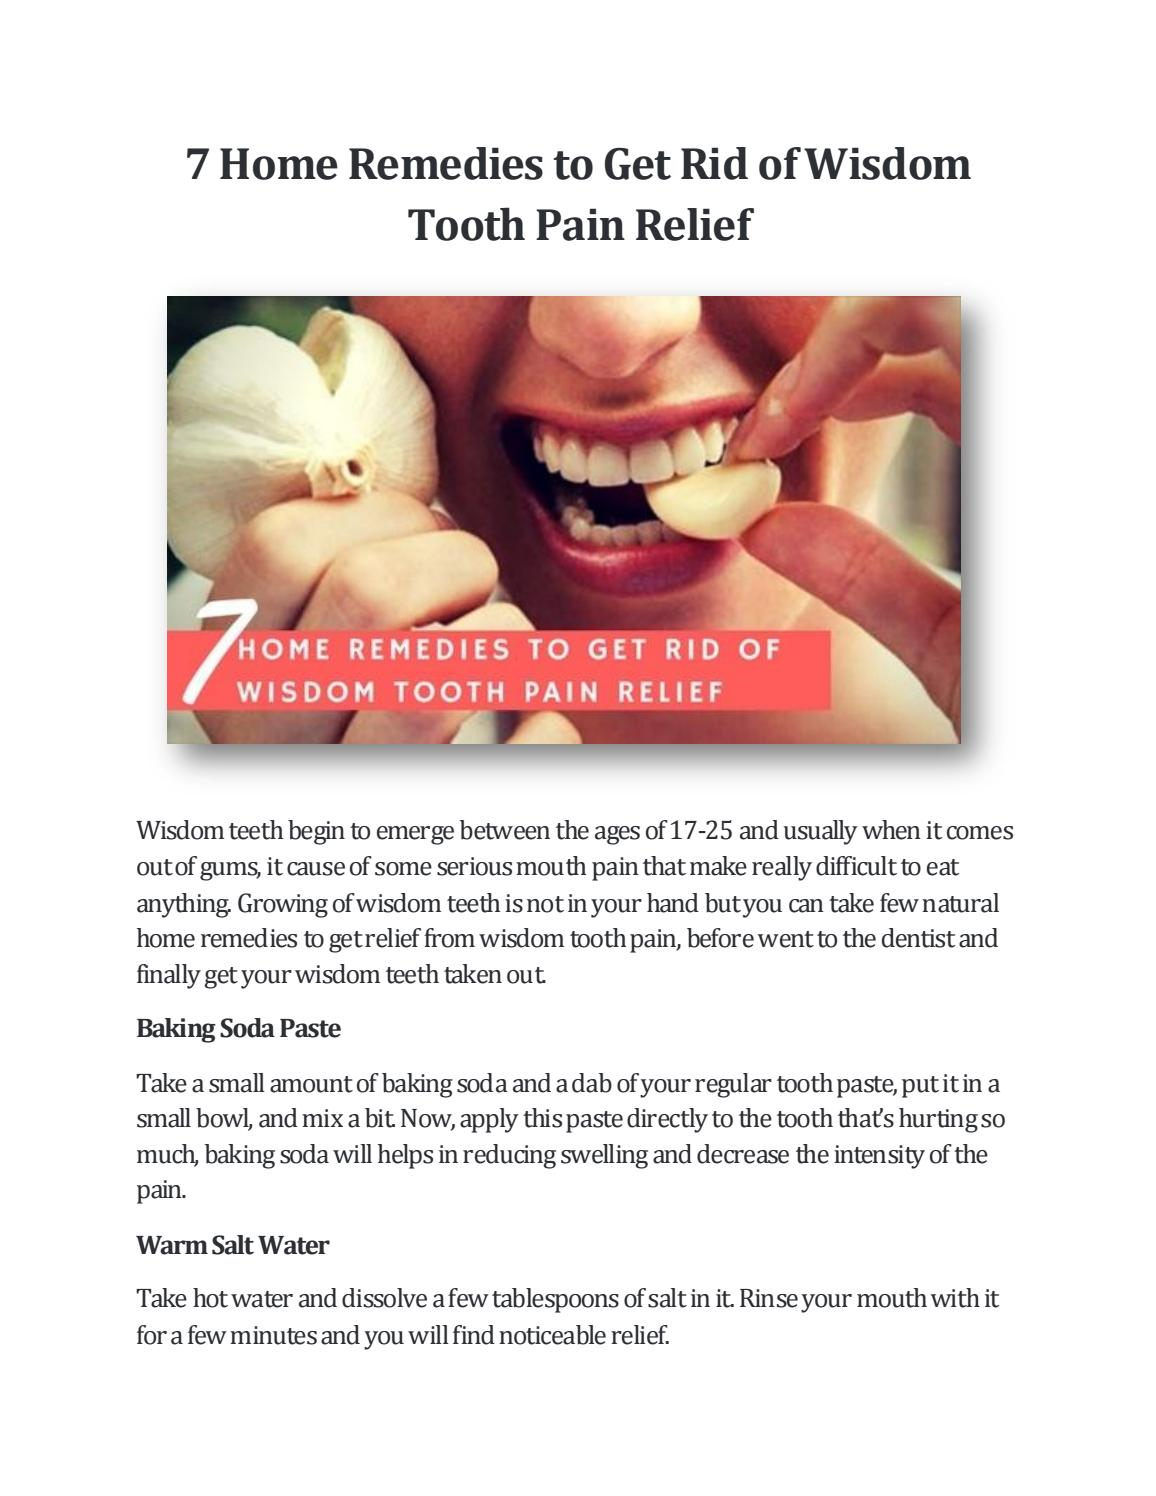 Home Remedies To Get Rid Of Tooth Pain